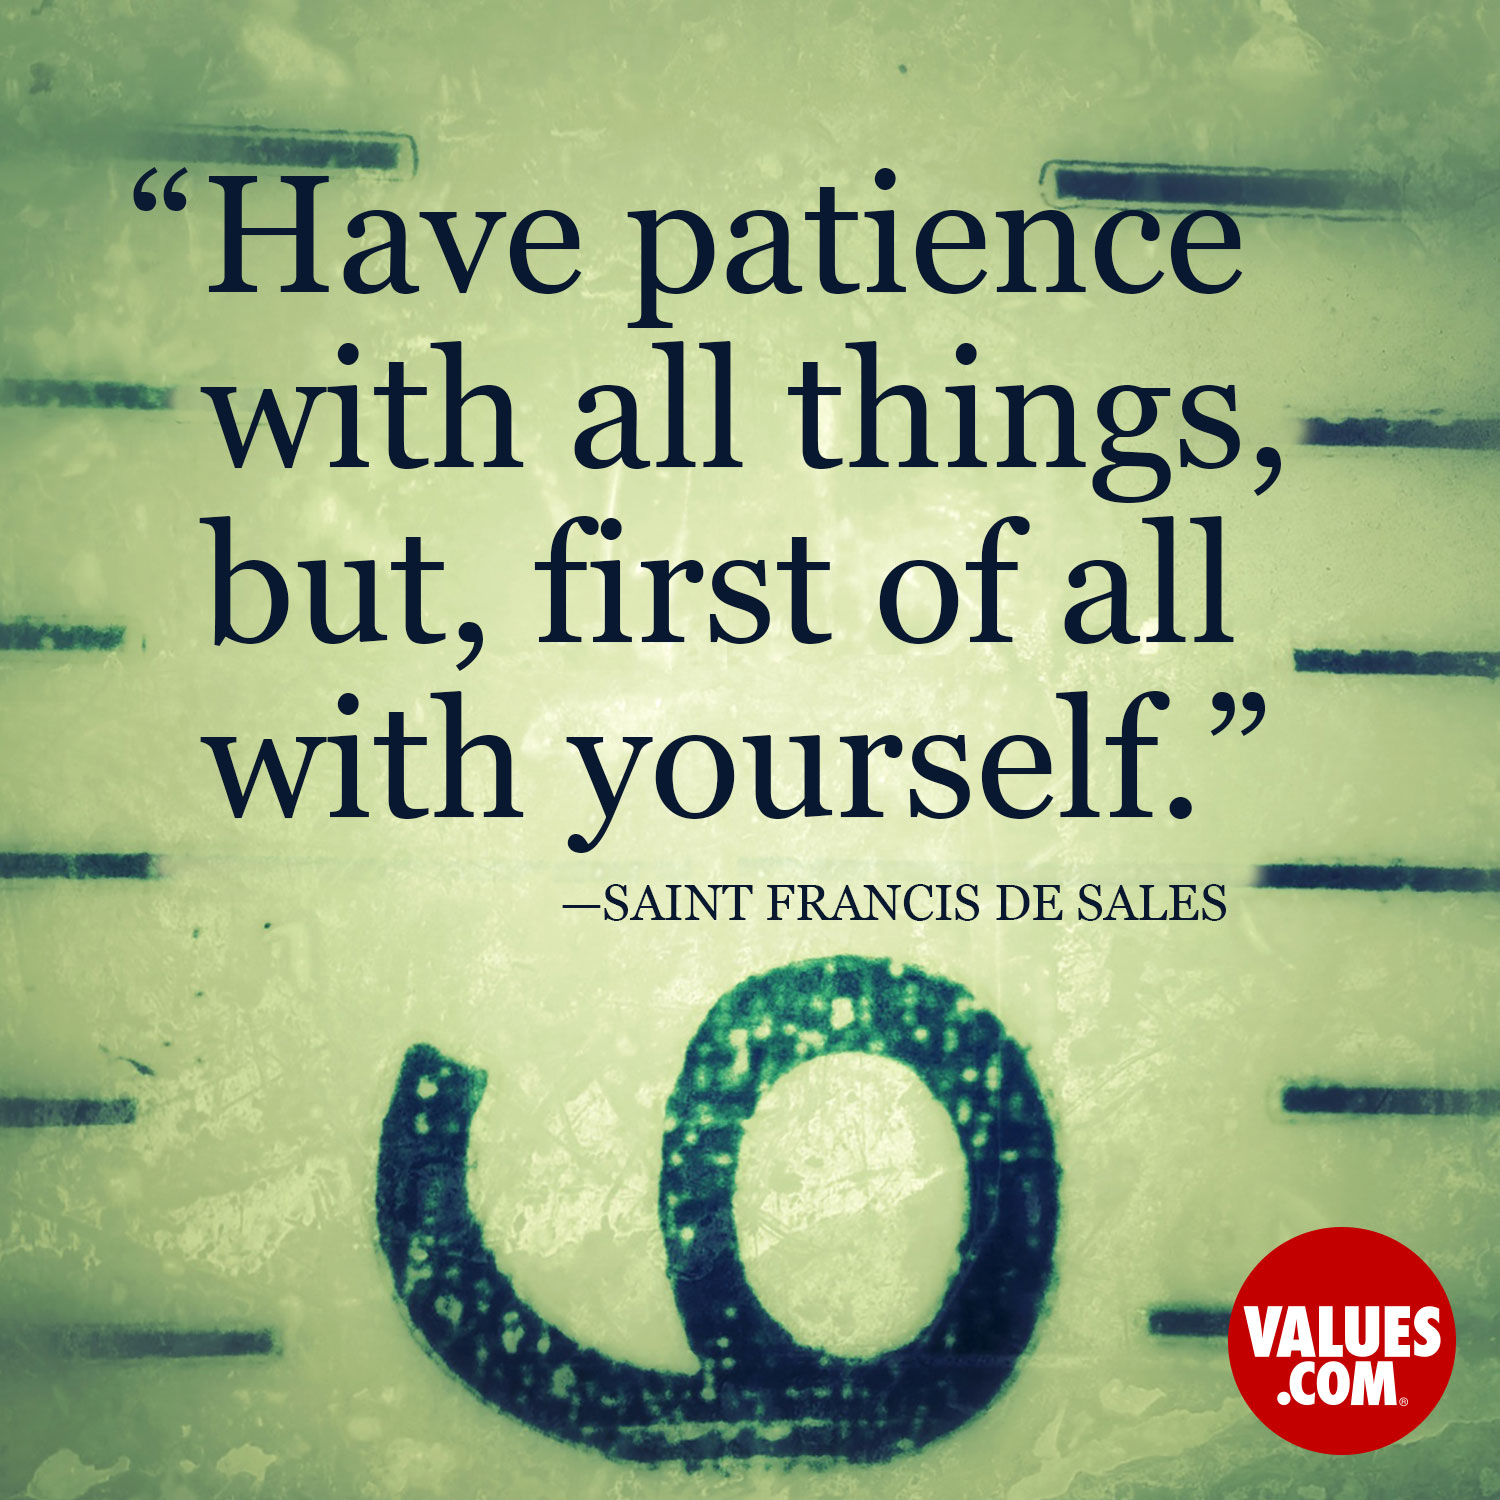 Have patience with all things, but, first of all with yourself. —Saint Francis de Sales